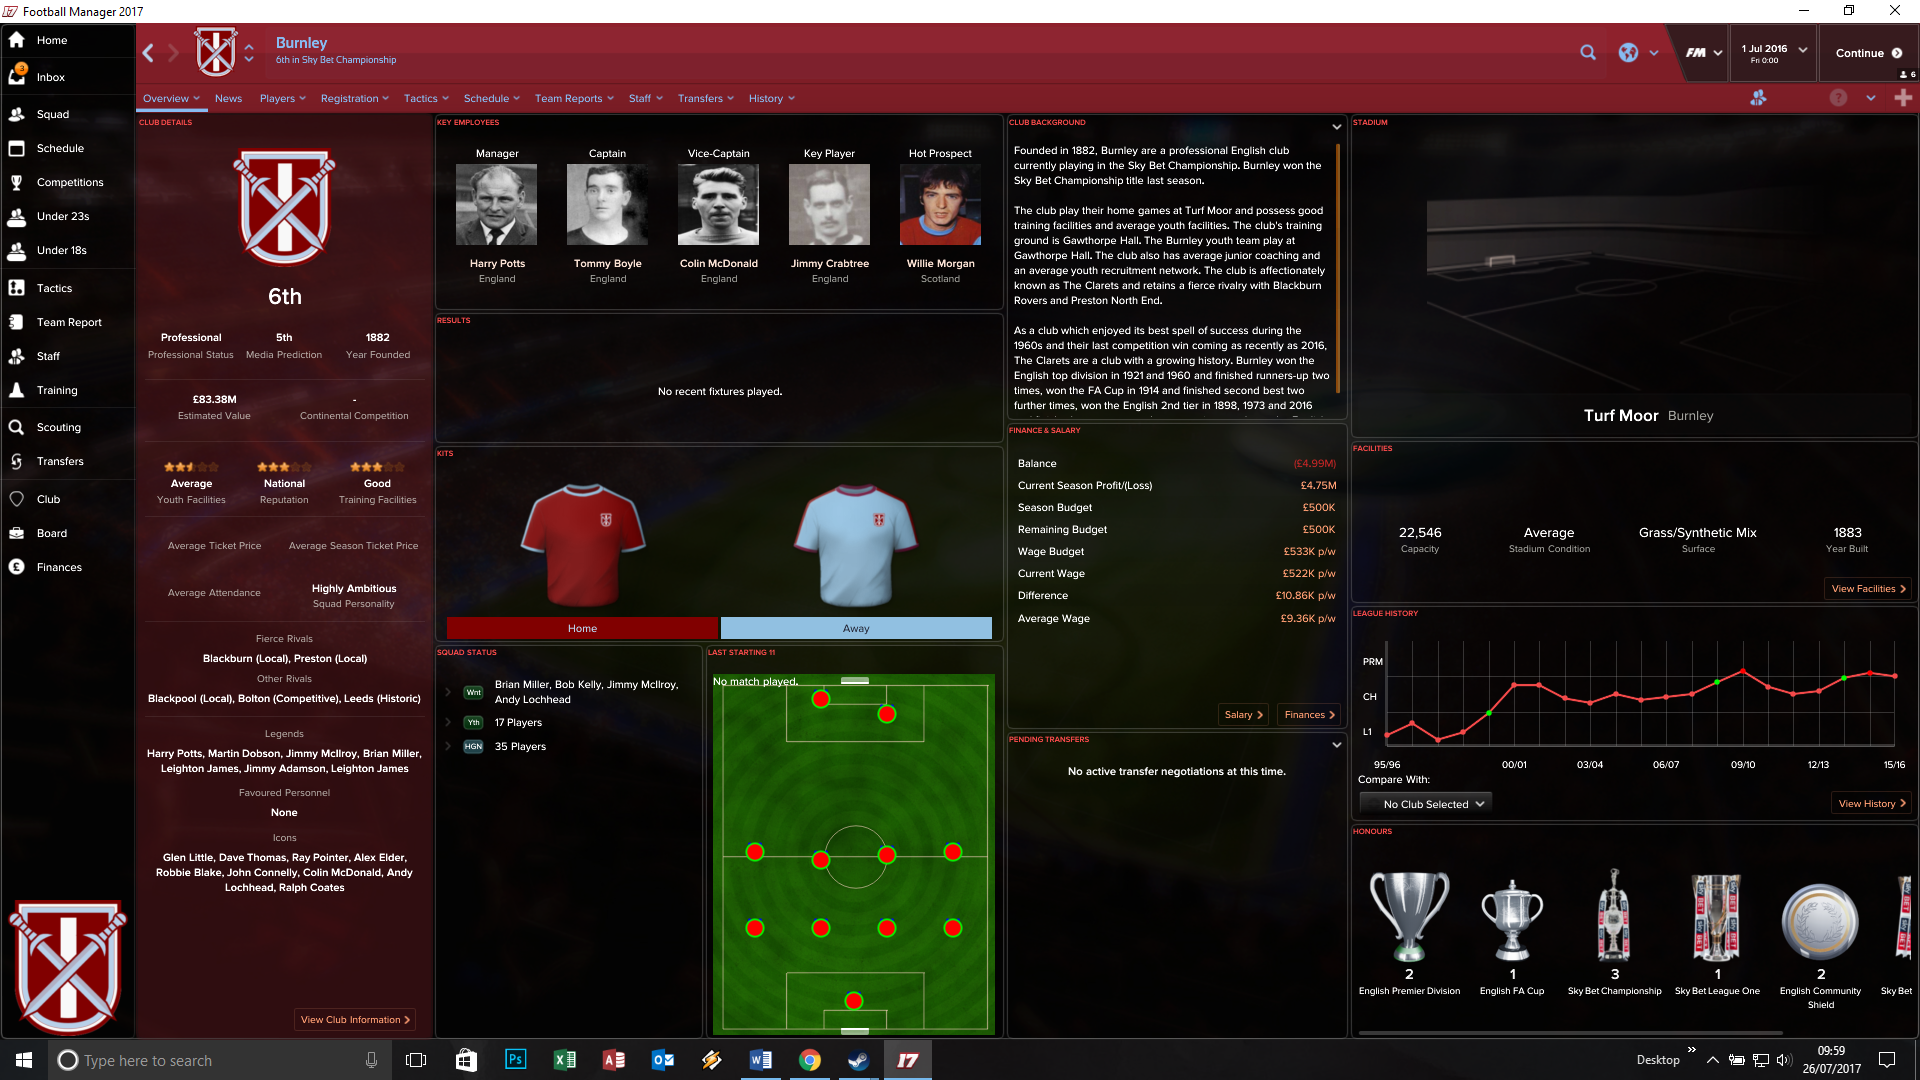 Burnley_Front.png